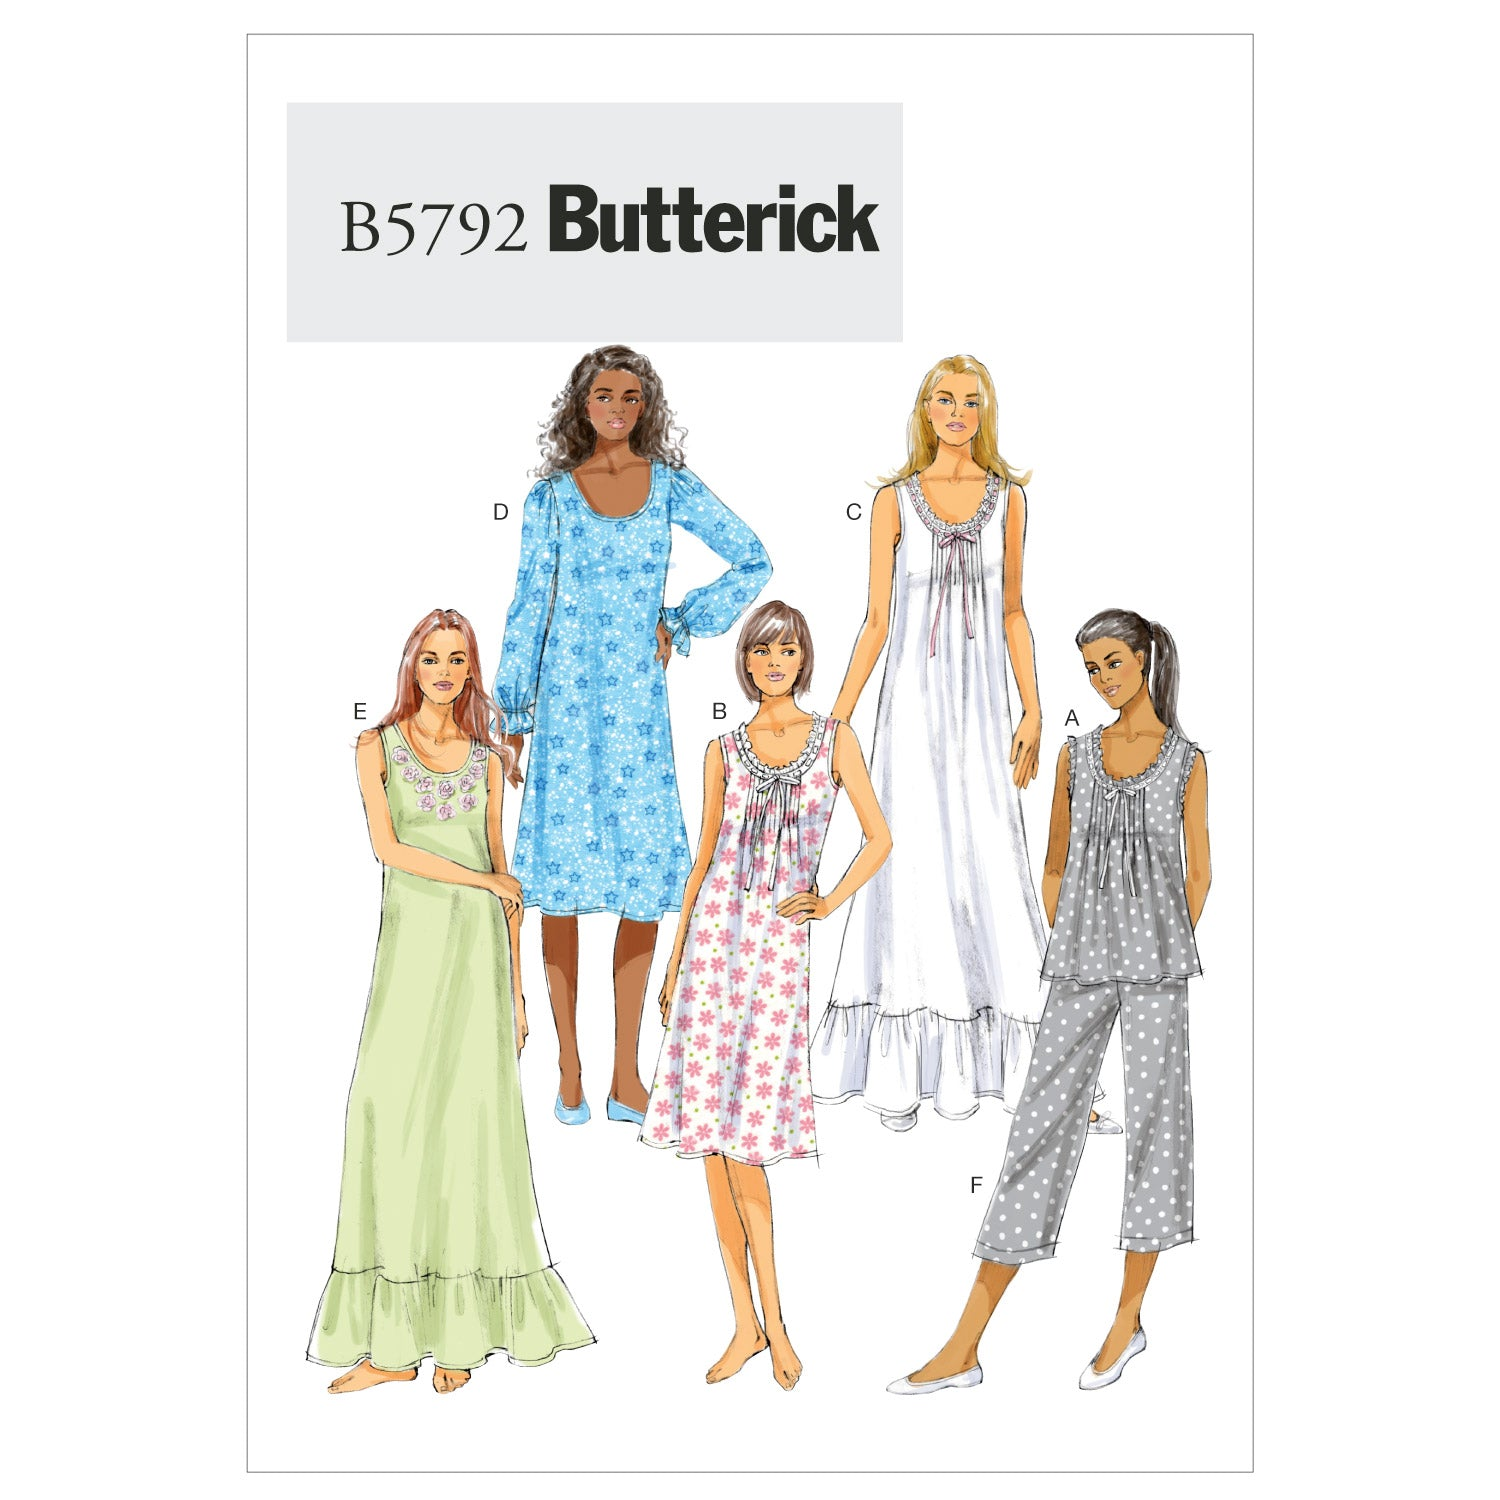 Butterick B57920Y0 Misses' Top, Gown and Pants XSM-SML-MED